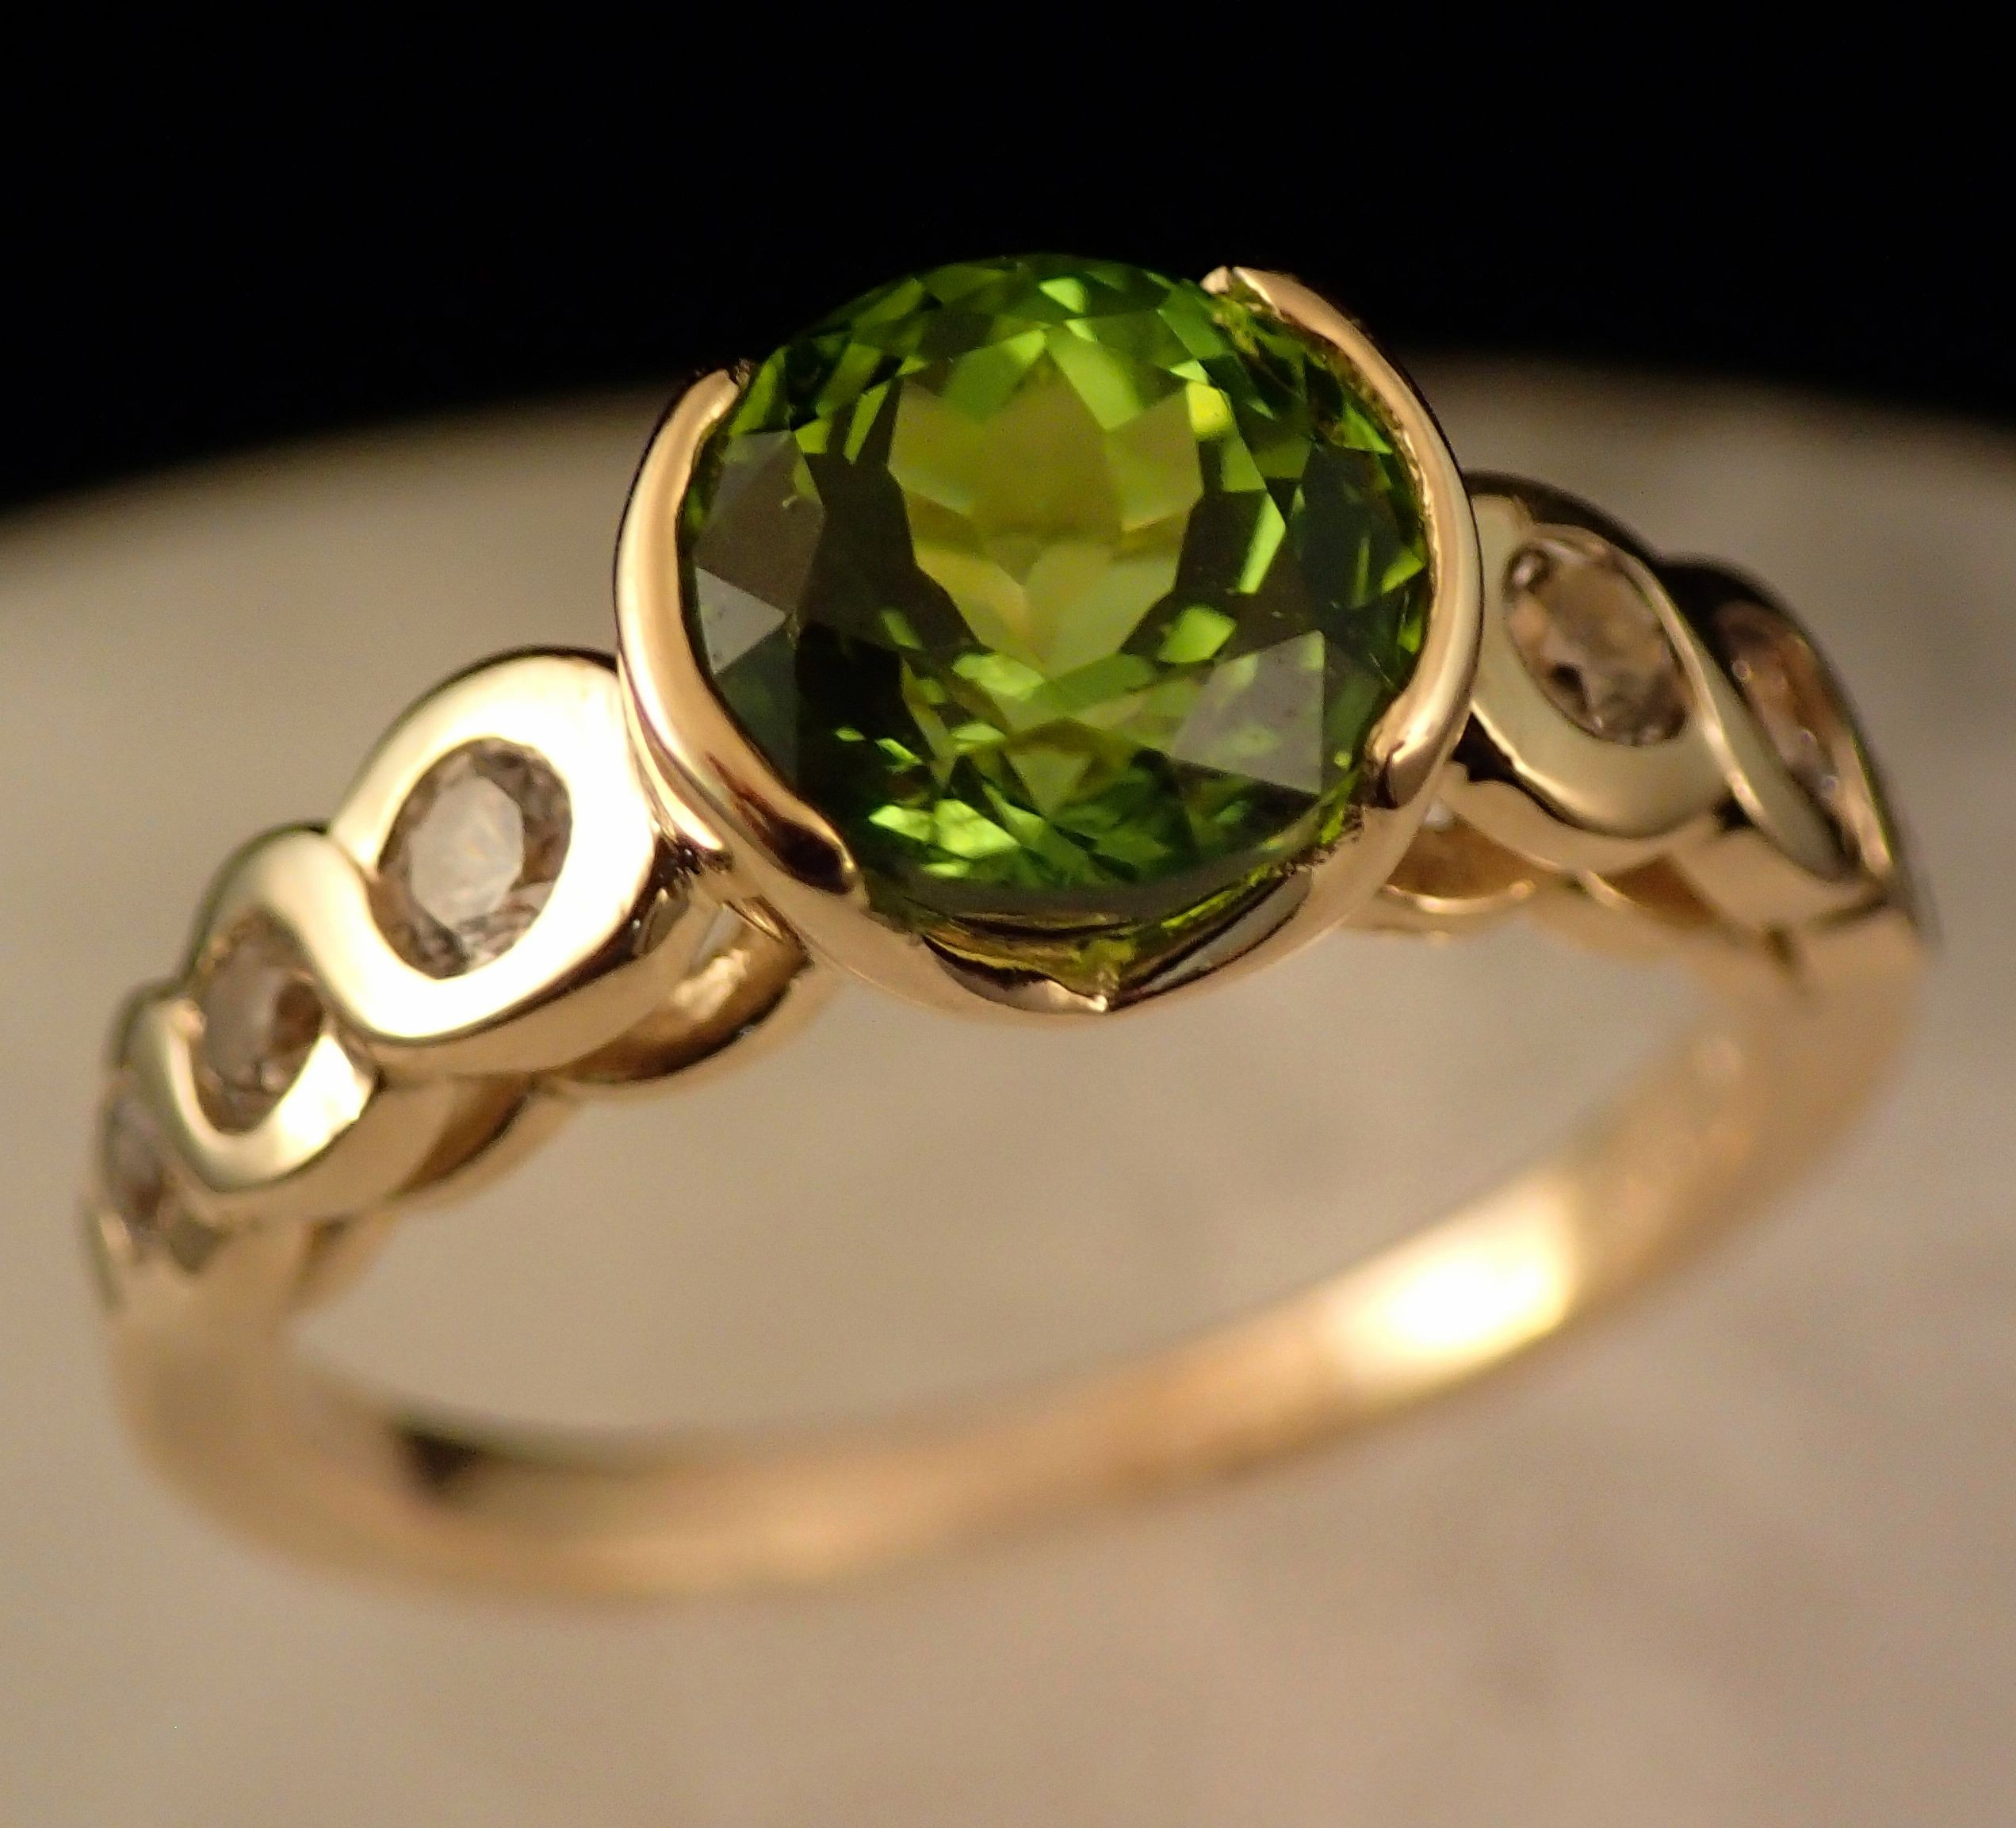 Rg0054 Peridot and White Sapphire Ring in 14k Yellow Gold